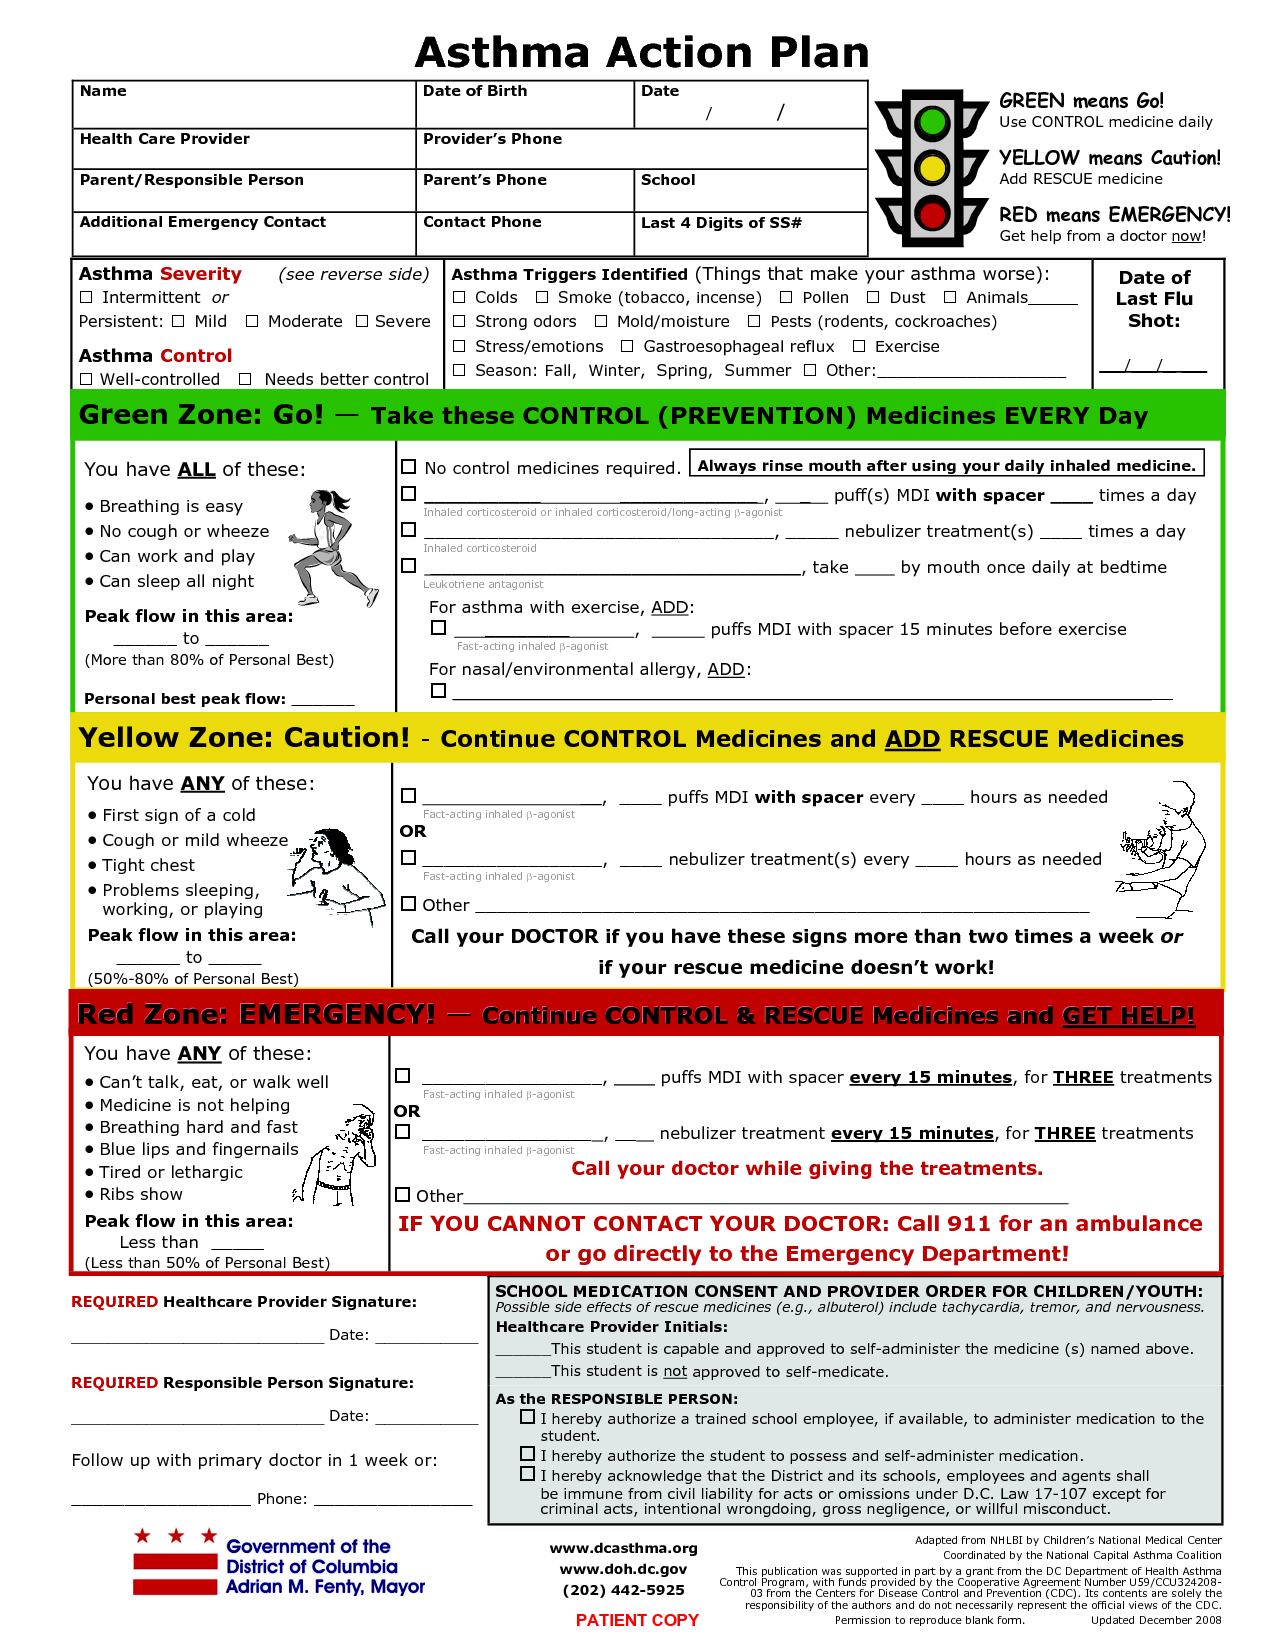 Printable Asthma Action Plan  Asthma Action Plan   Charts Of